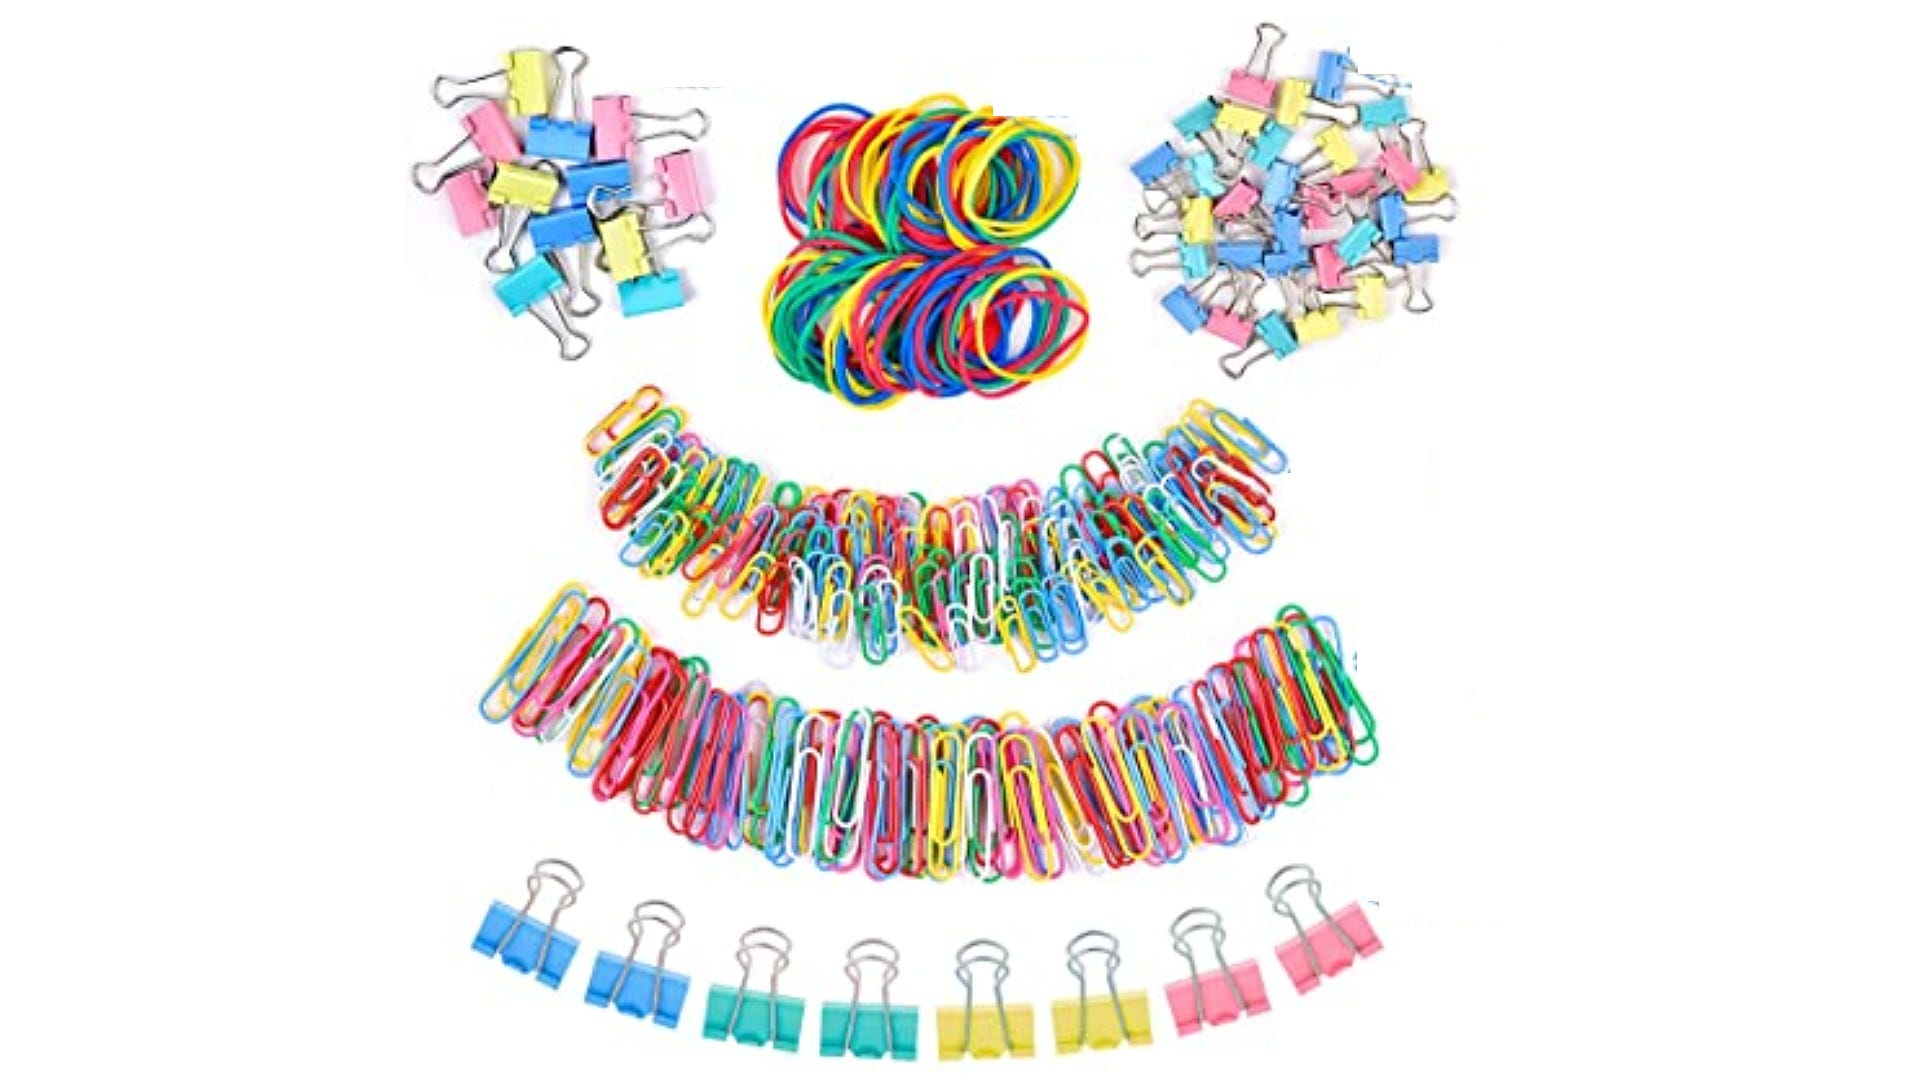 Multi-colored paper clips, binder clips, and rubber bands.